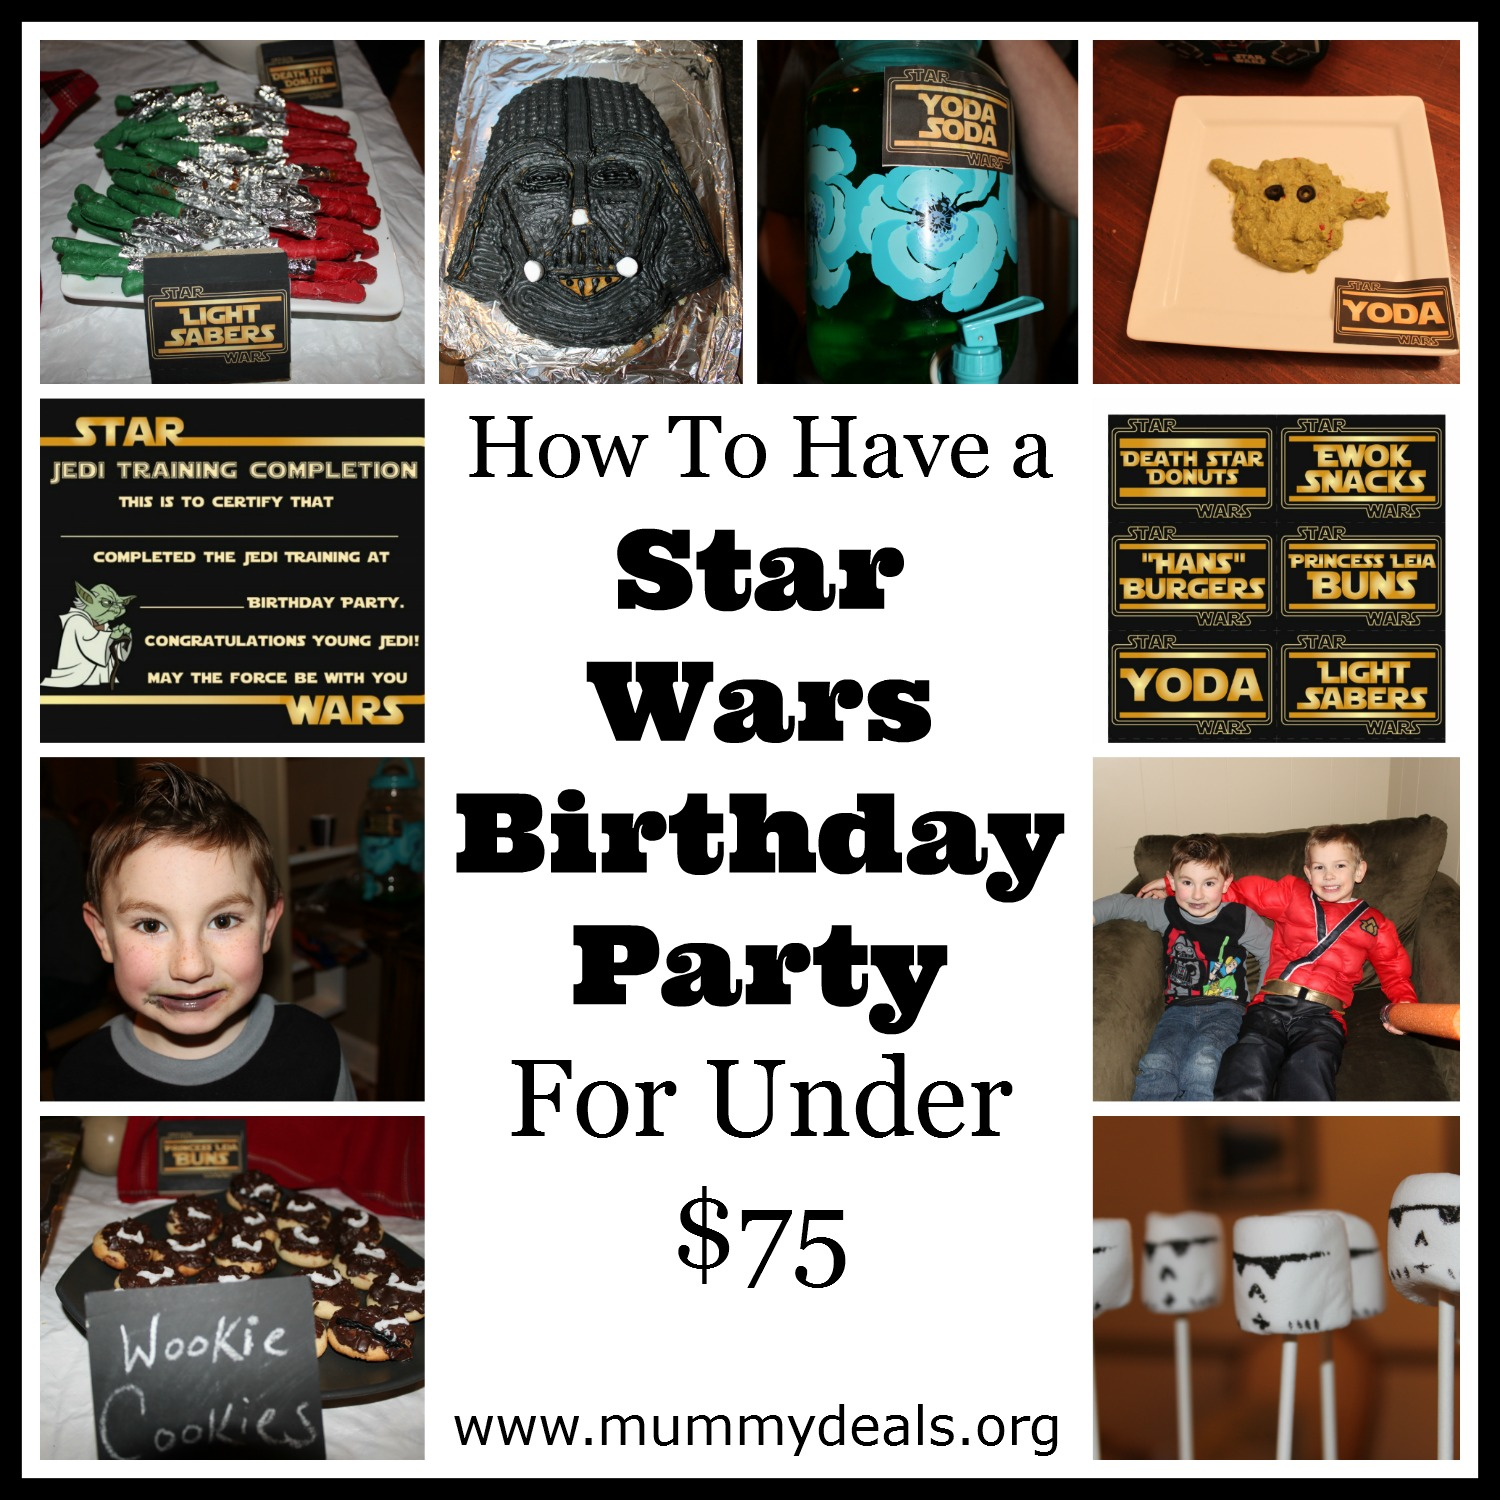 How To Have a Star Wars Birthday Party For Under $75